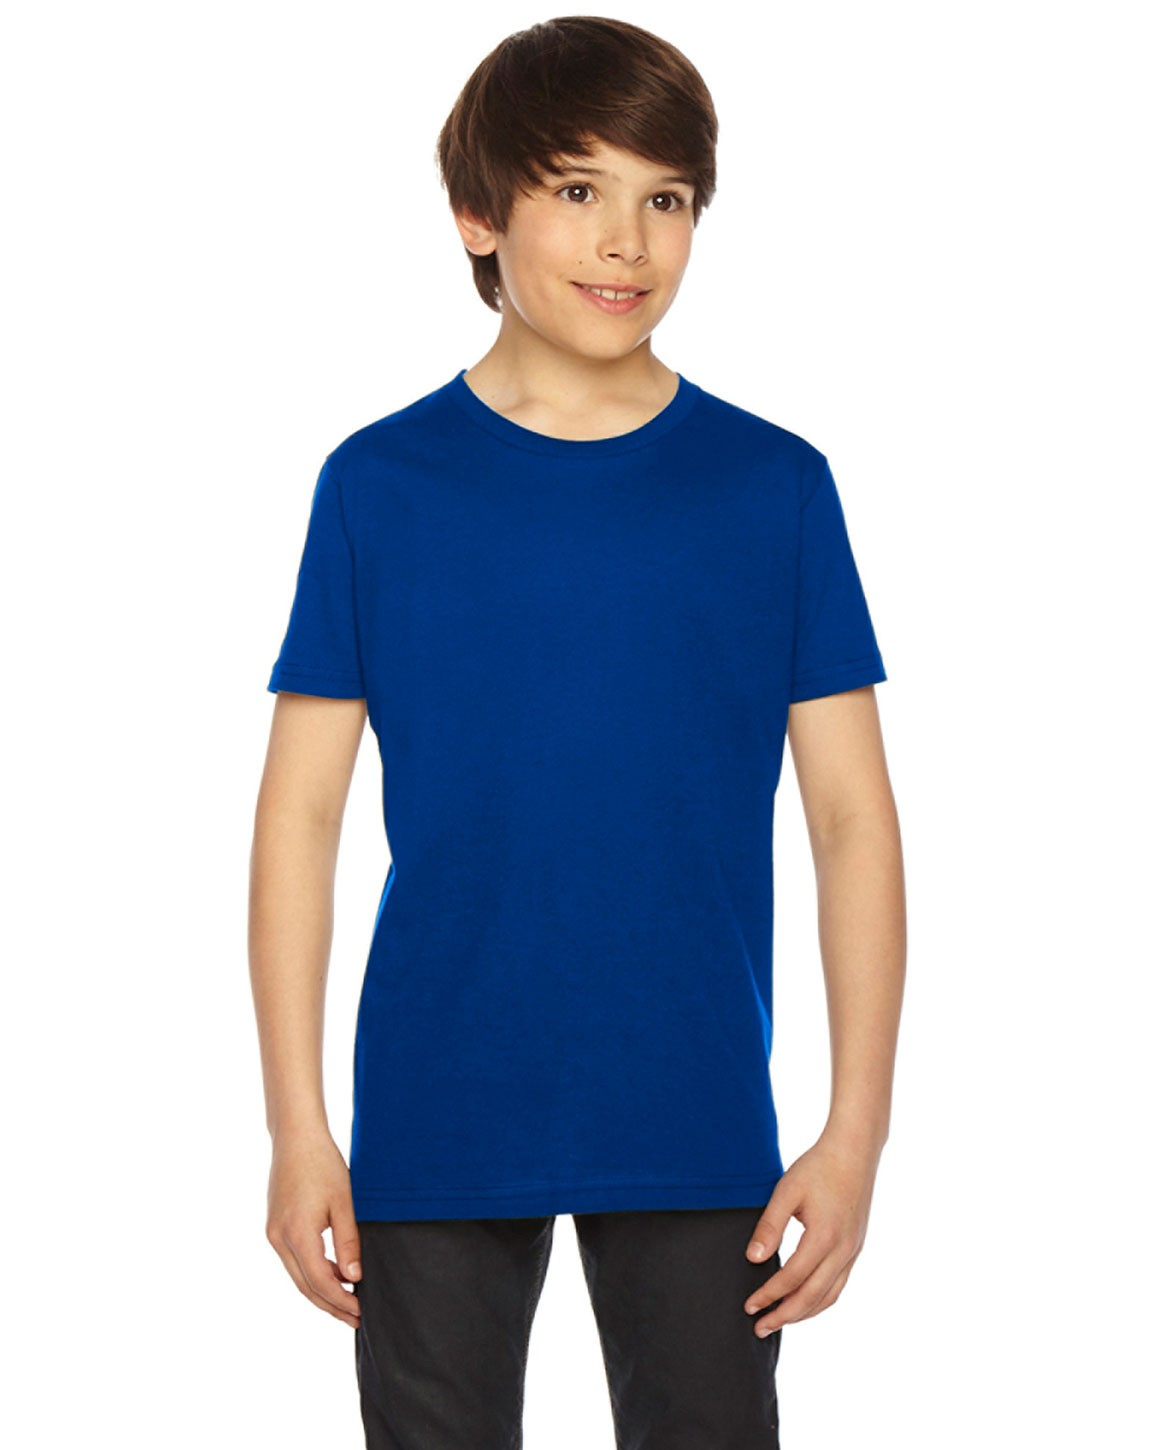 American Apparel 2201W Youth Fine Jersey T-Shirt